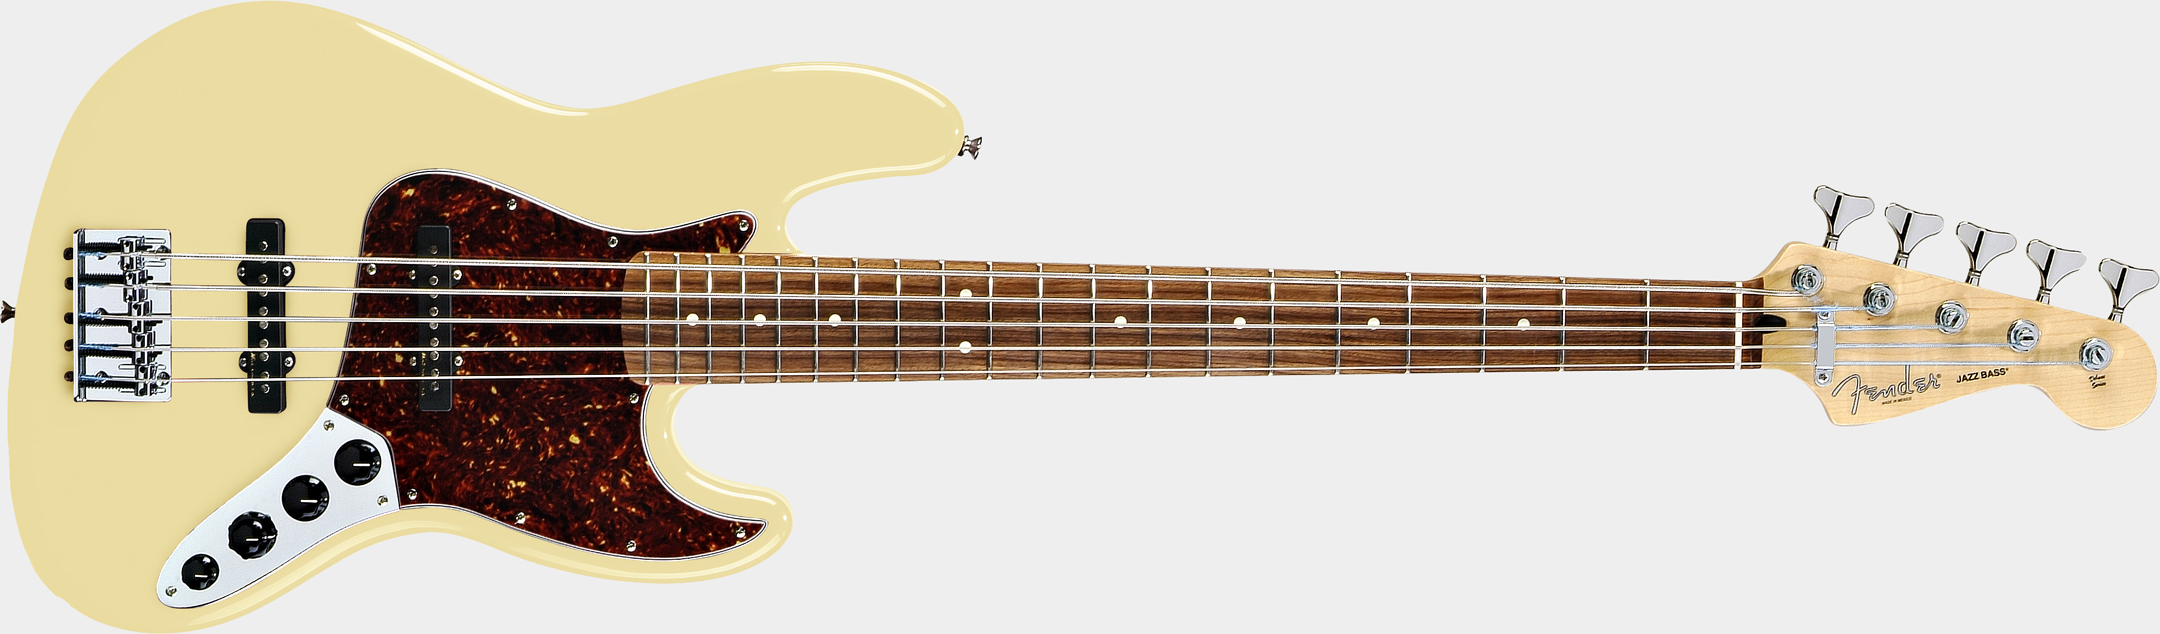 FENDER Deluxe Active Jazz Bass V Vintage White